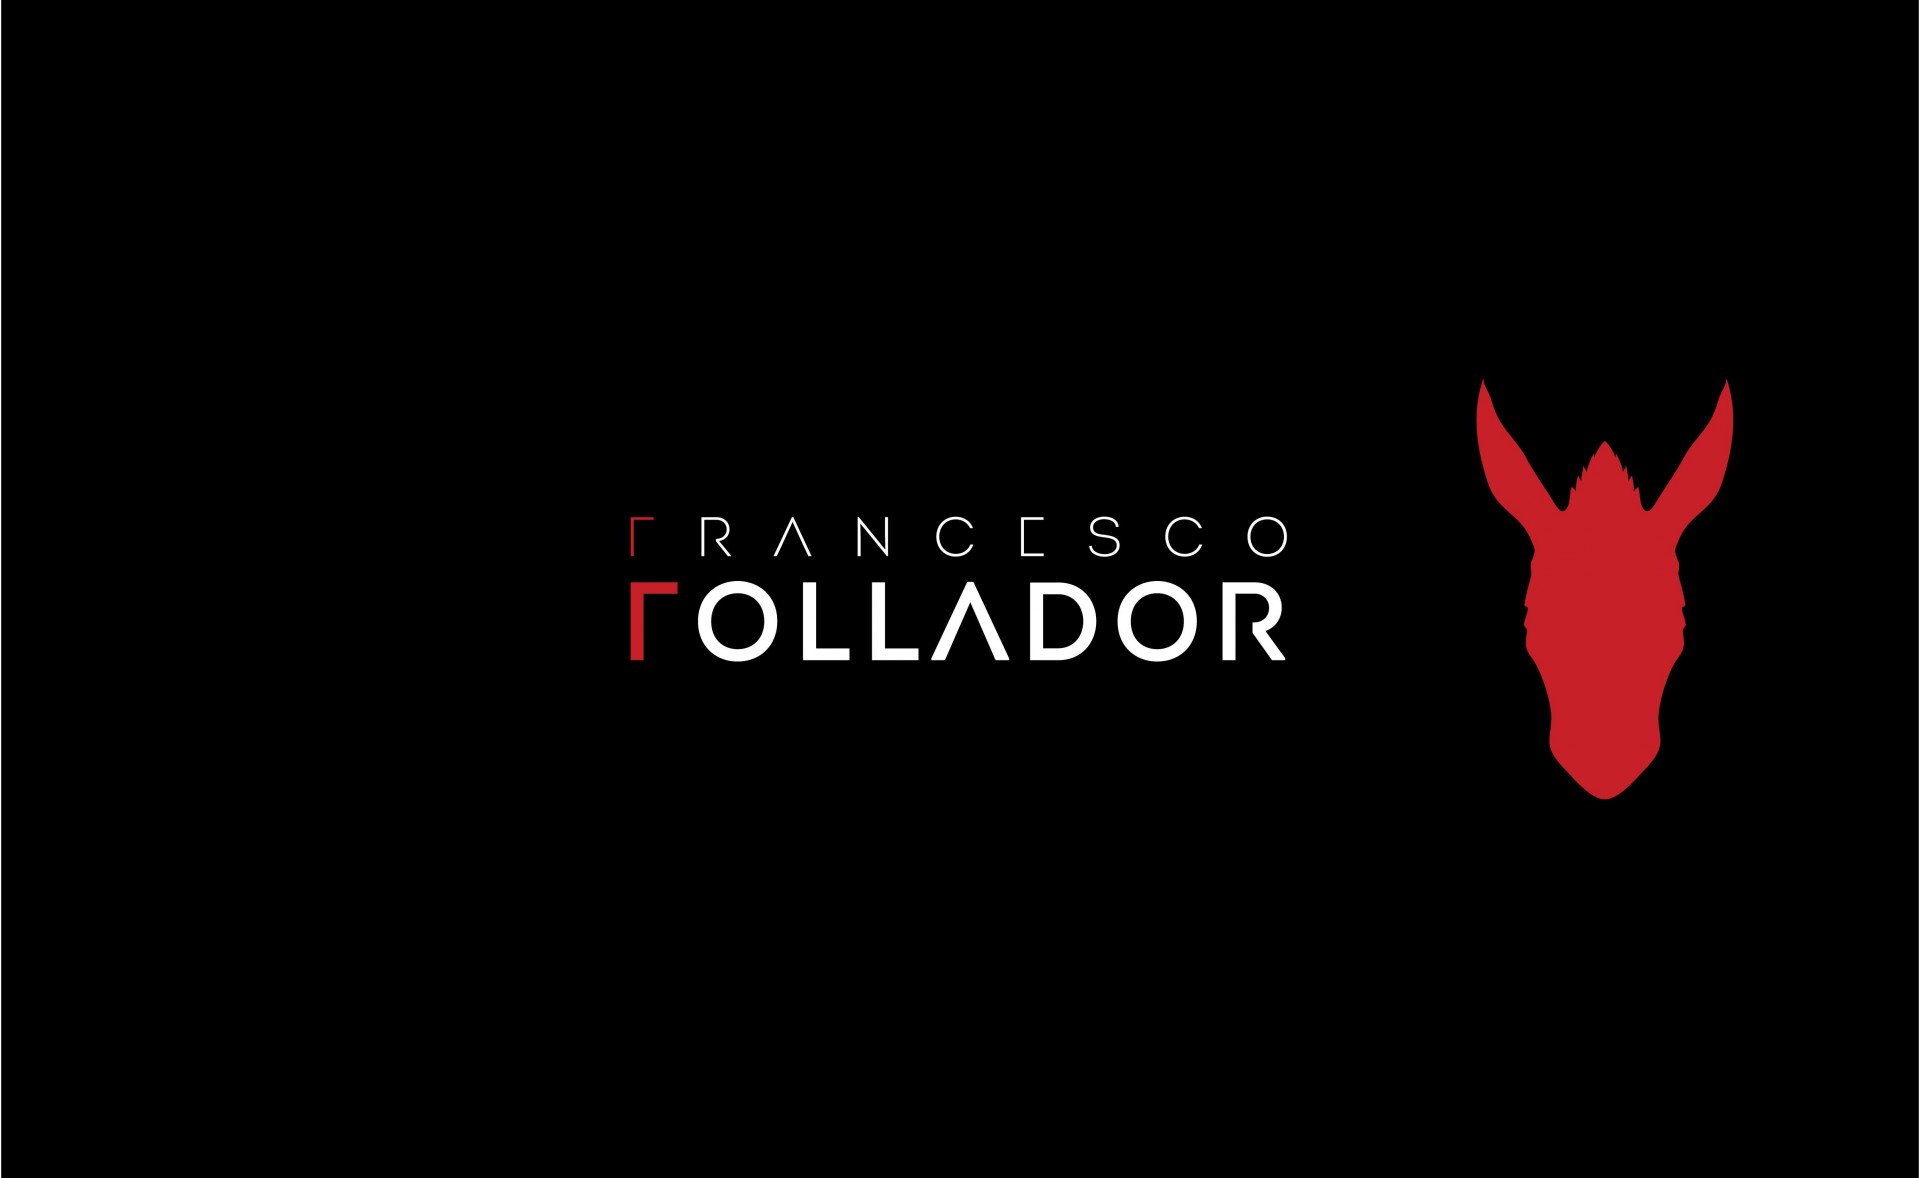 Follador Francesco